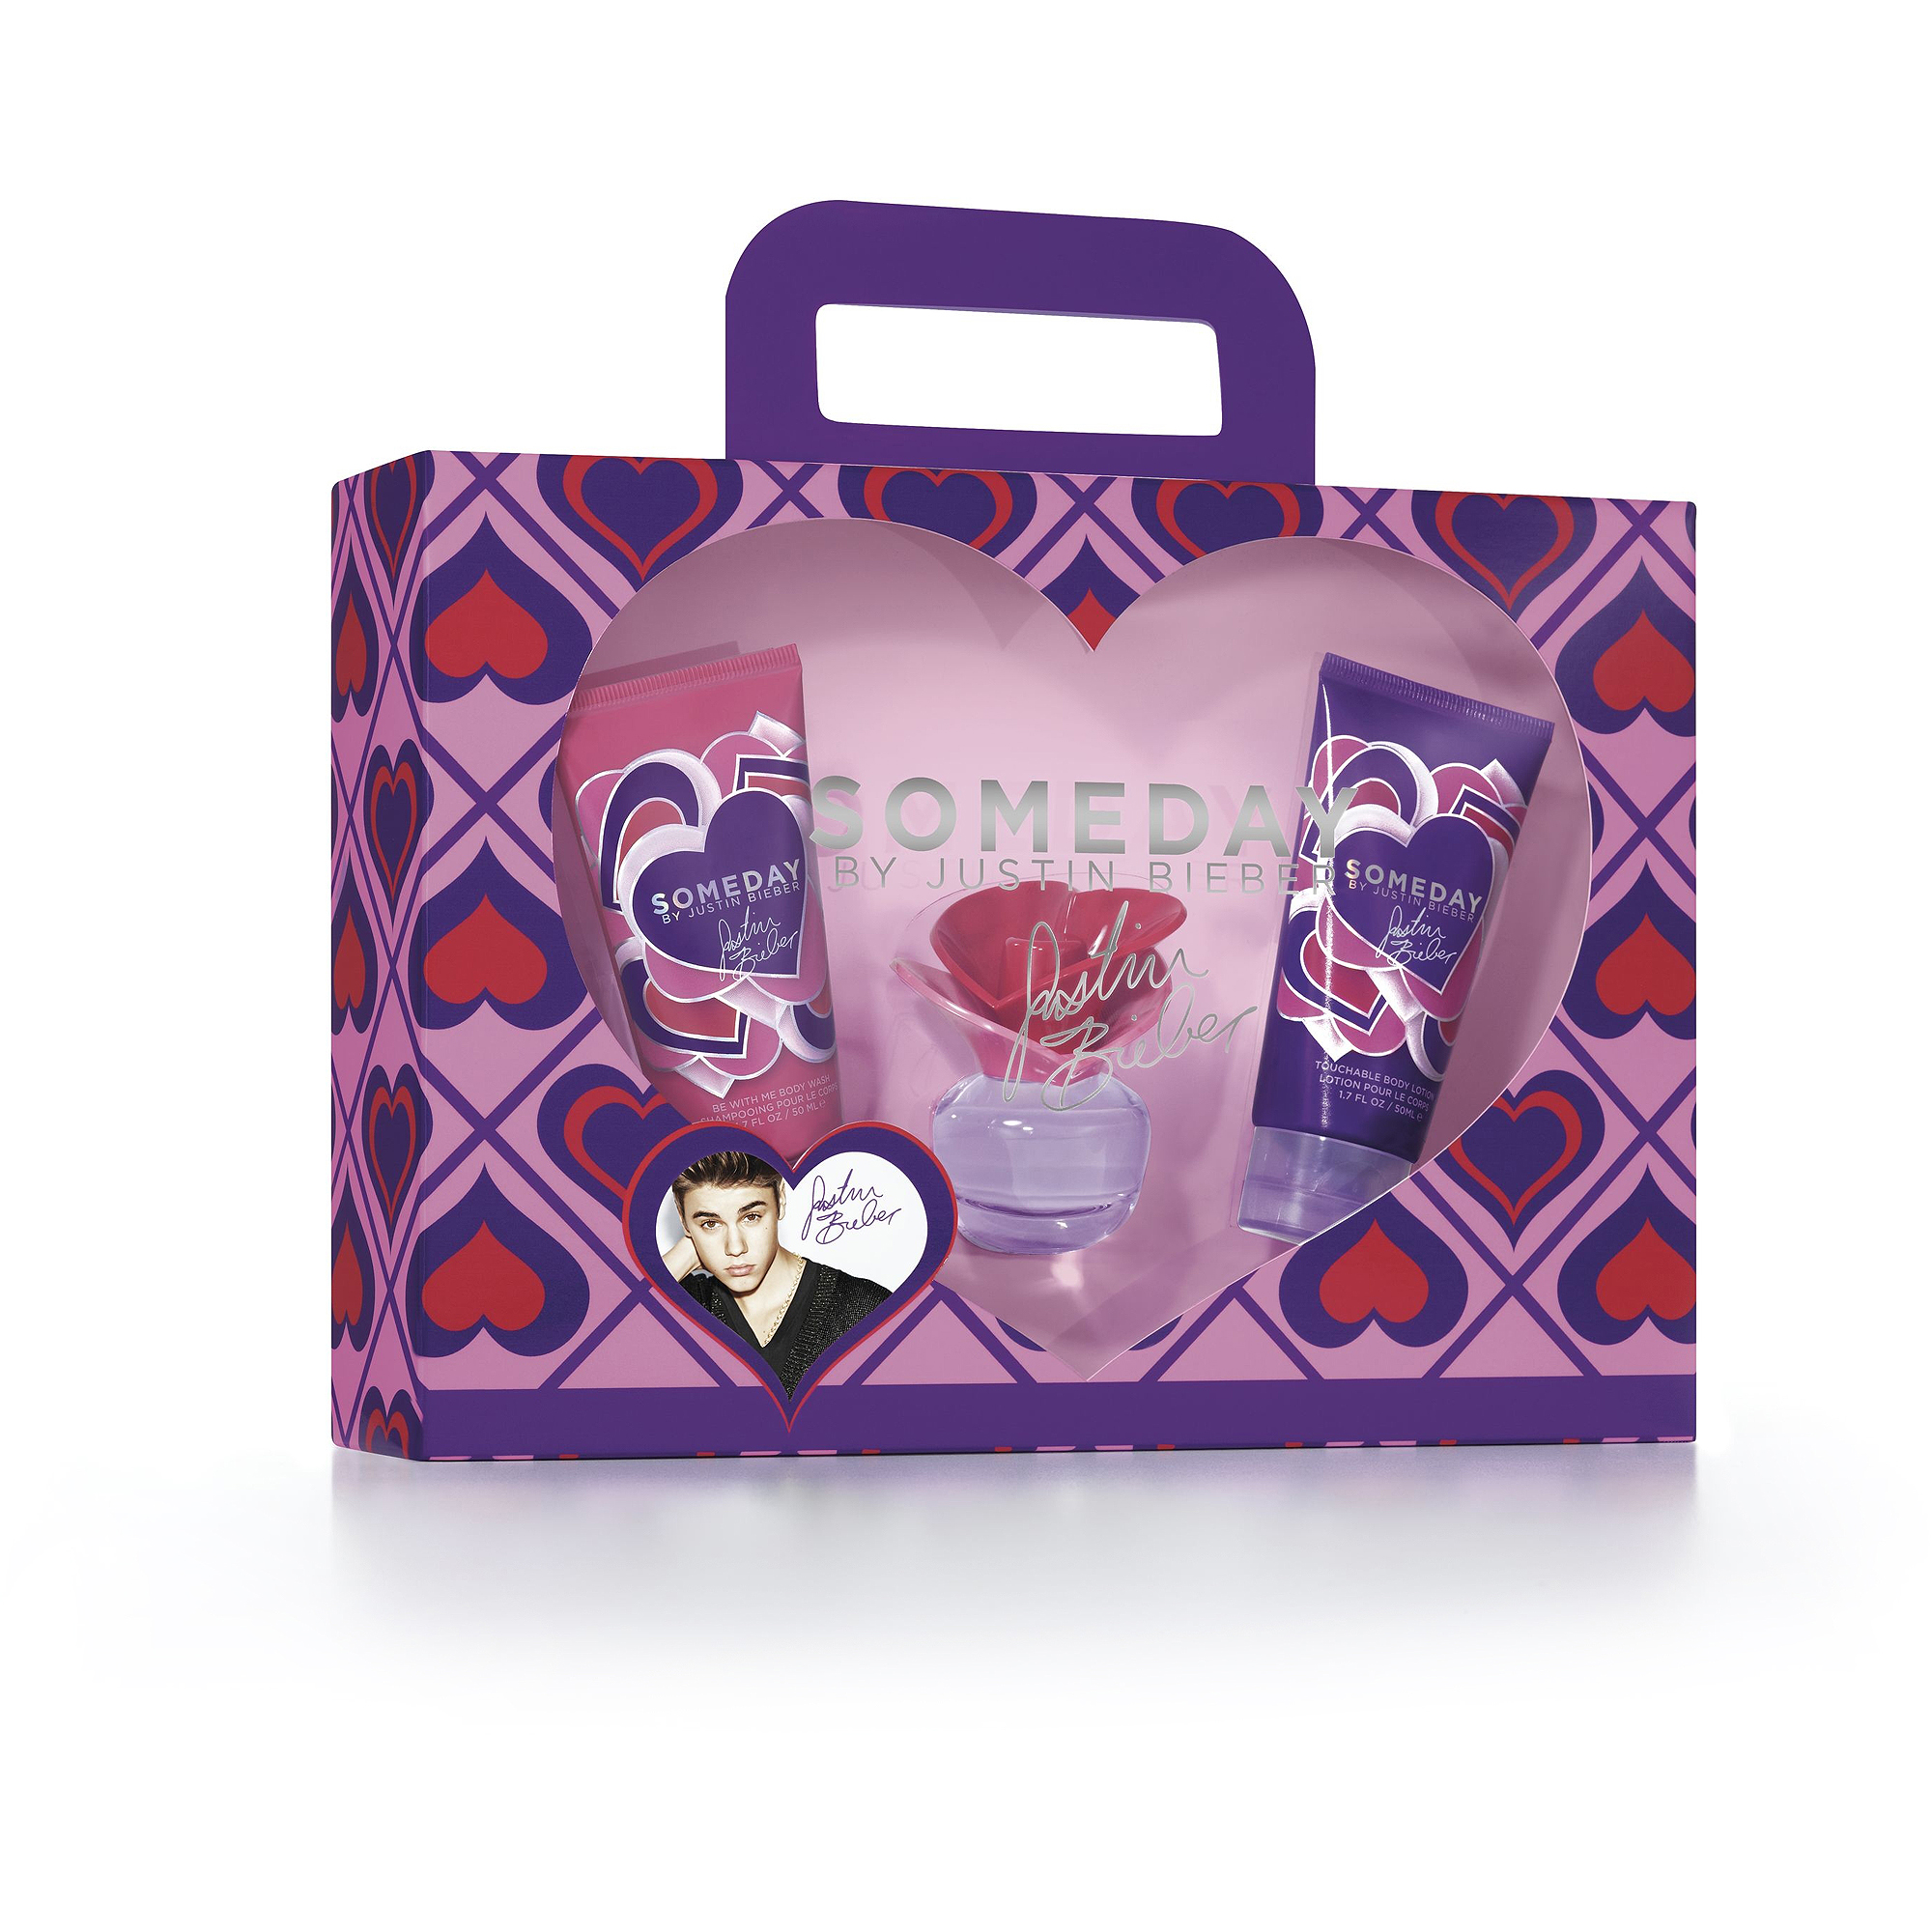 Justin Bieber Someday Gift Set for Women, 3 pc